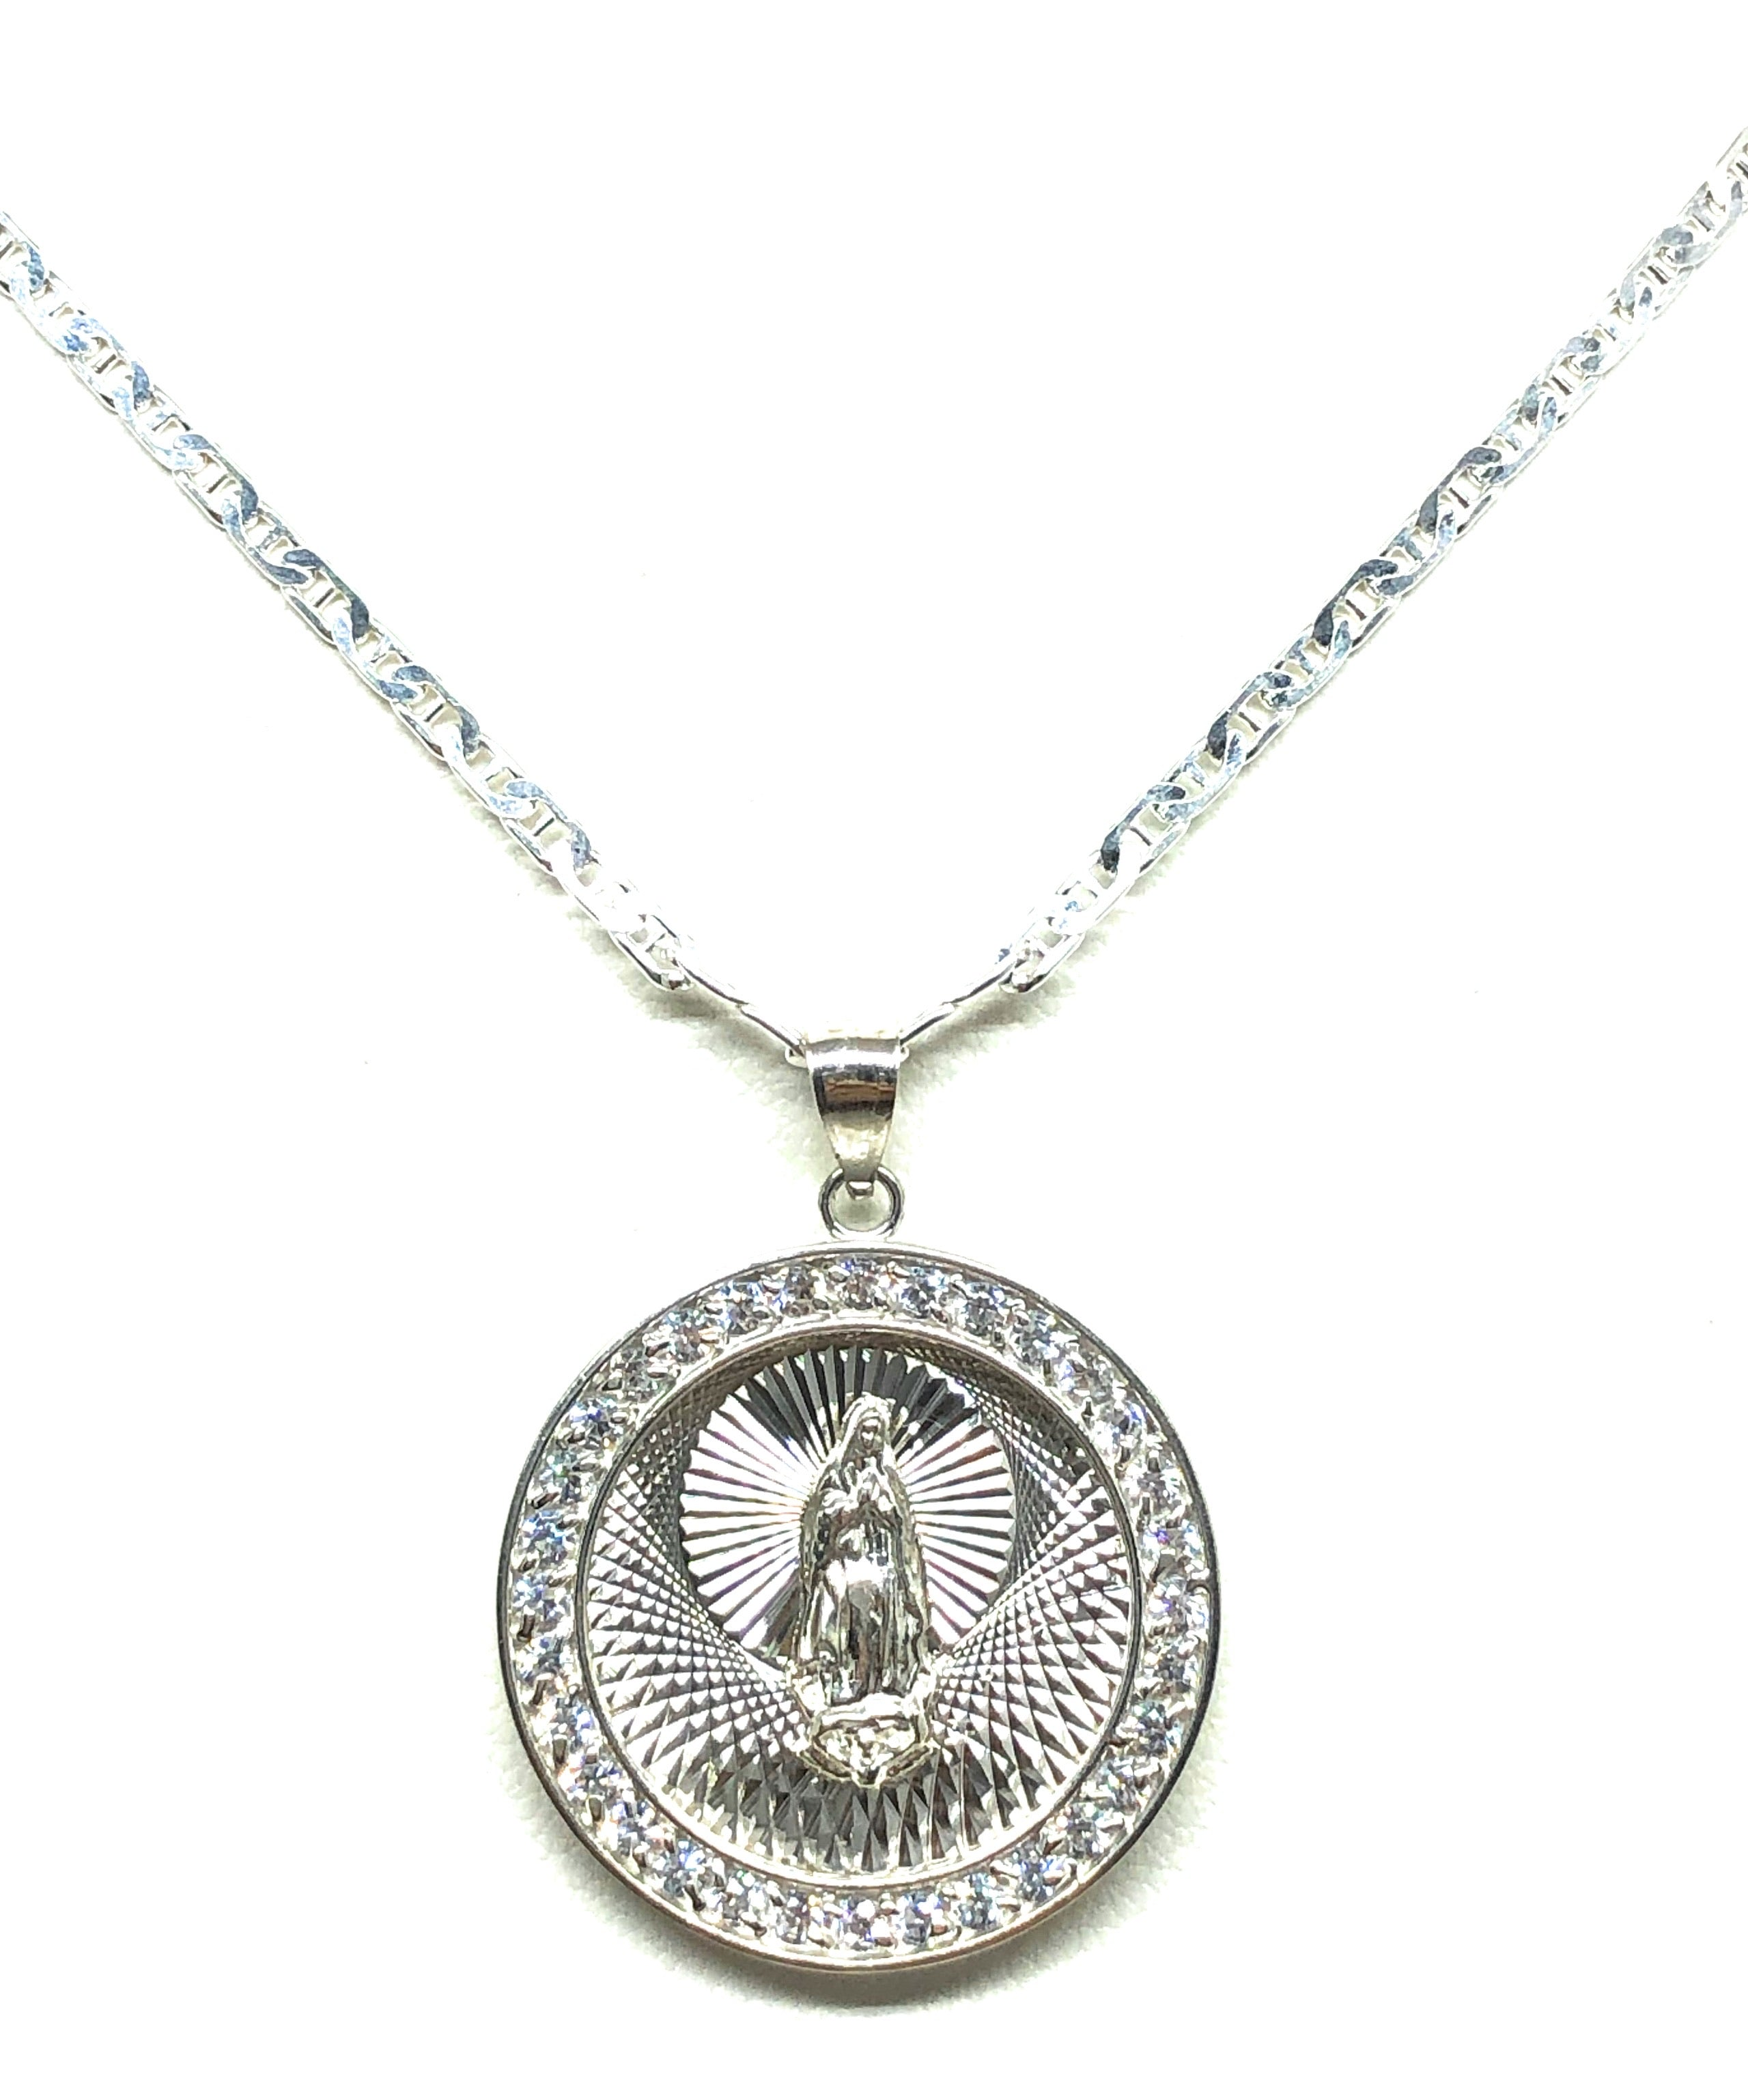 .925 Silver Round Virrgin Marry Pendant CZ Necklace with Chain Options